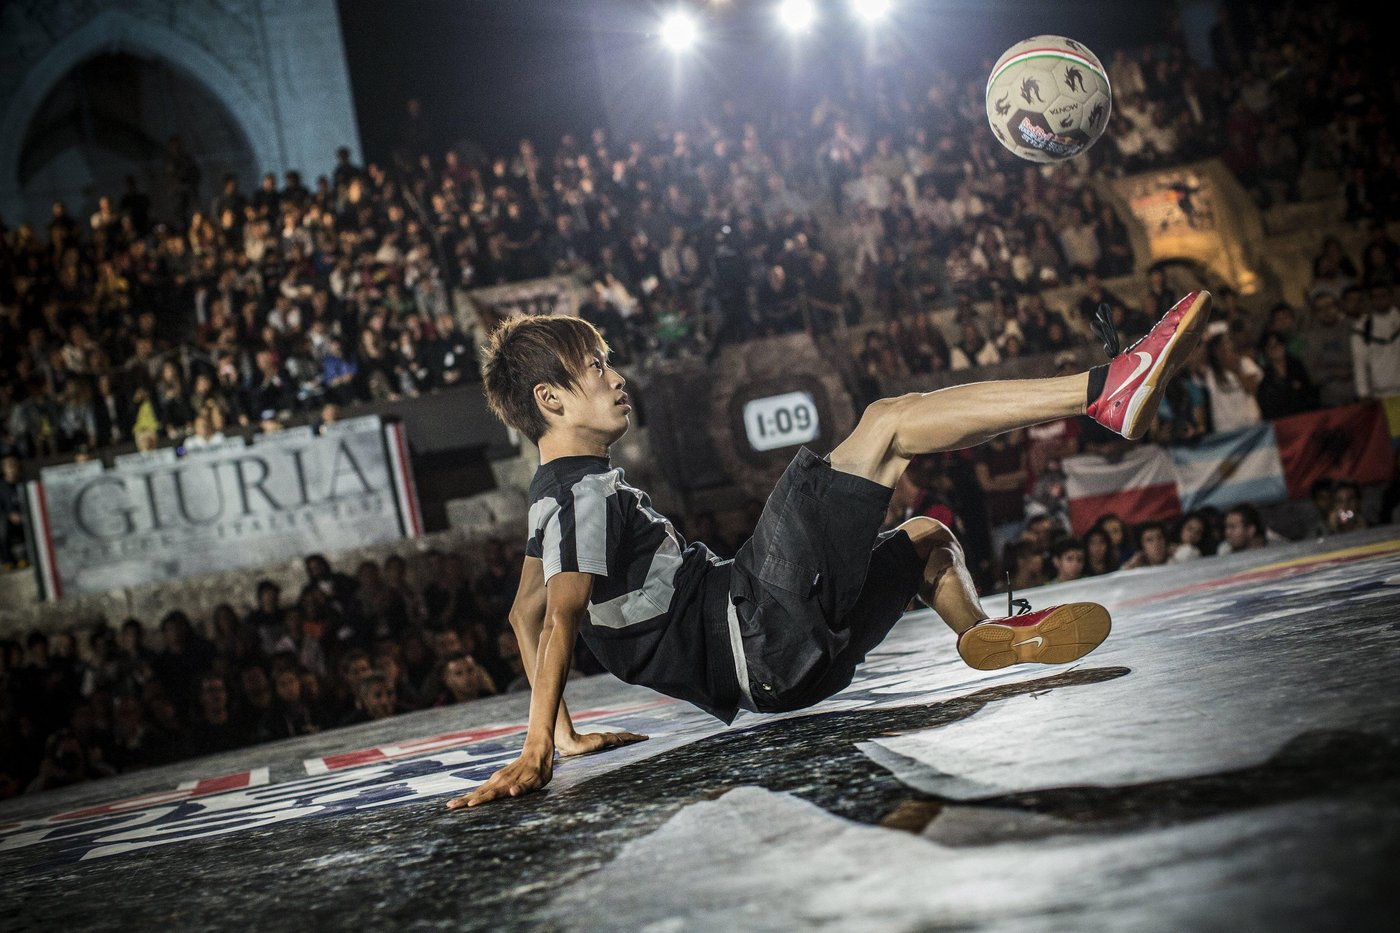 Kotaro Tokuda of Japan performs during the Red Bull Street Style World Final, Lecce, Italy on September 22nd 2012. // Romina Amato/Red Bull Content Pool // P-20120923-00054 // Usage for editorial use only // Please go to www.redbullcontentpool.com for further information. //